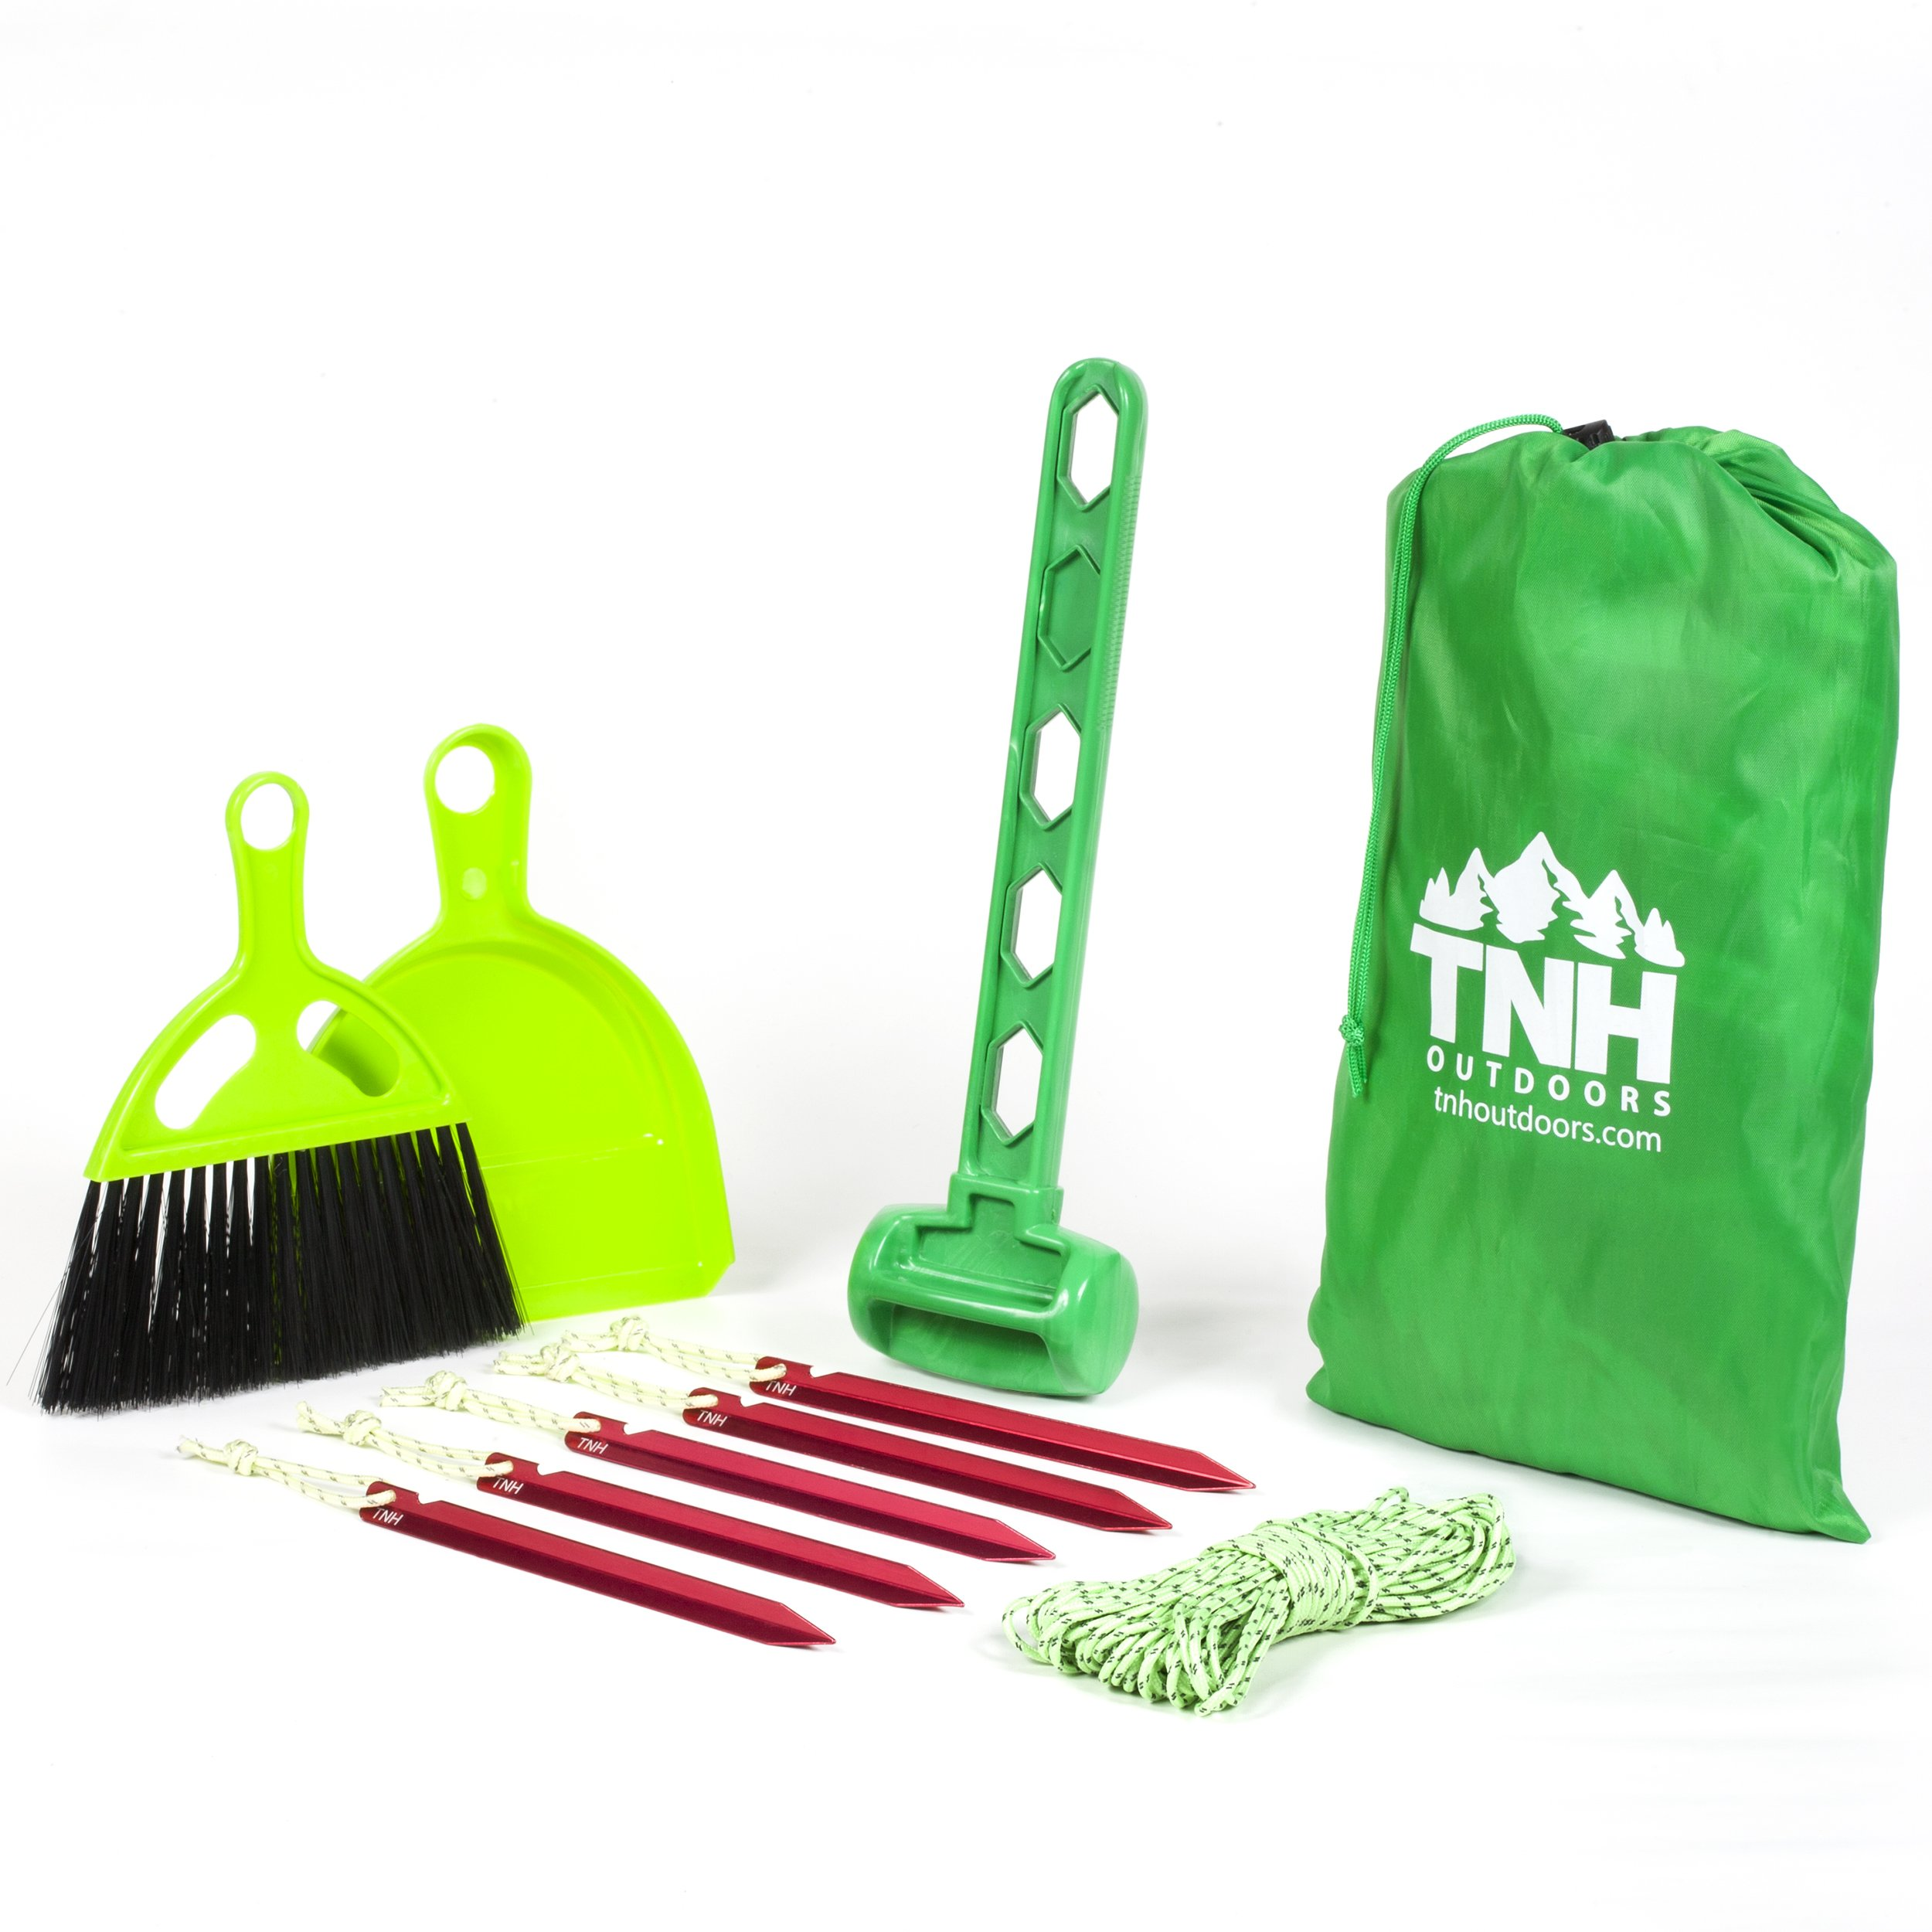 TNH Outdoors Tent Stakes Kit With 5 Aluminum Tent Pegs, Plastic Mallet, Reflective Nylon Paracord, Nesting Hand Broom & Dustpan And A Carrying Mesh Bag